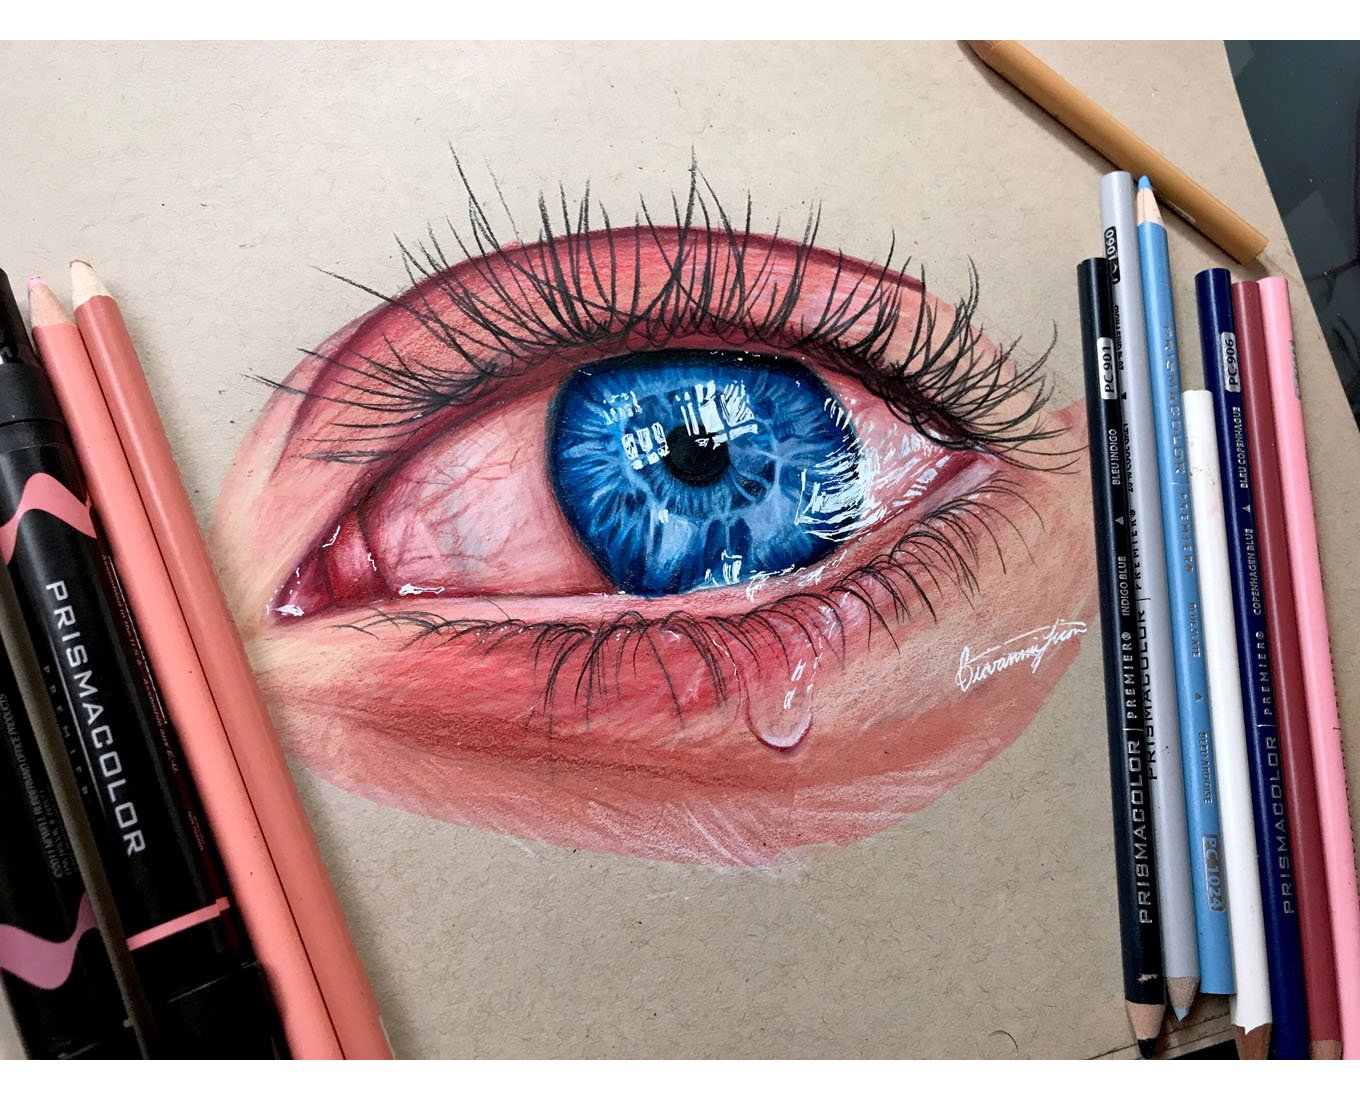 Continue pushing the contrast further highlights are added to the pupil to give the illusion of realistic watery eyes